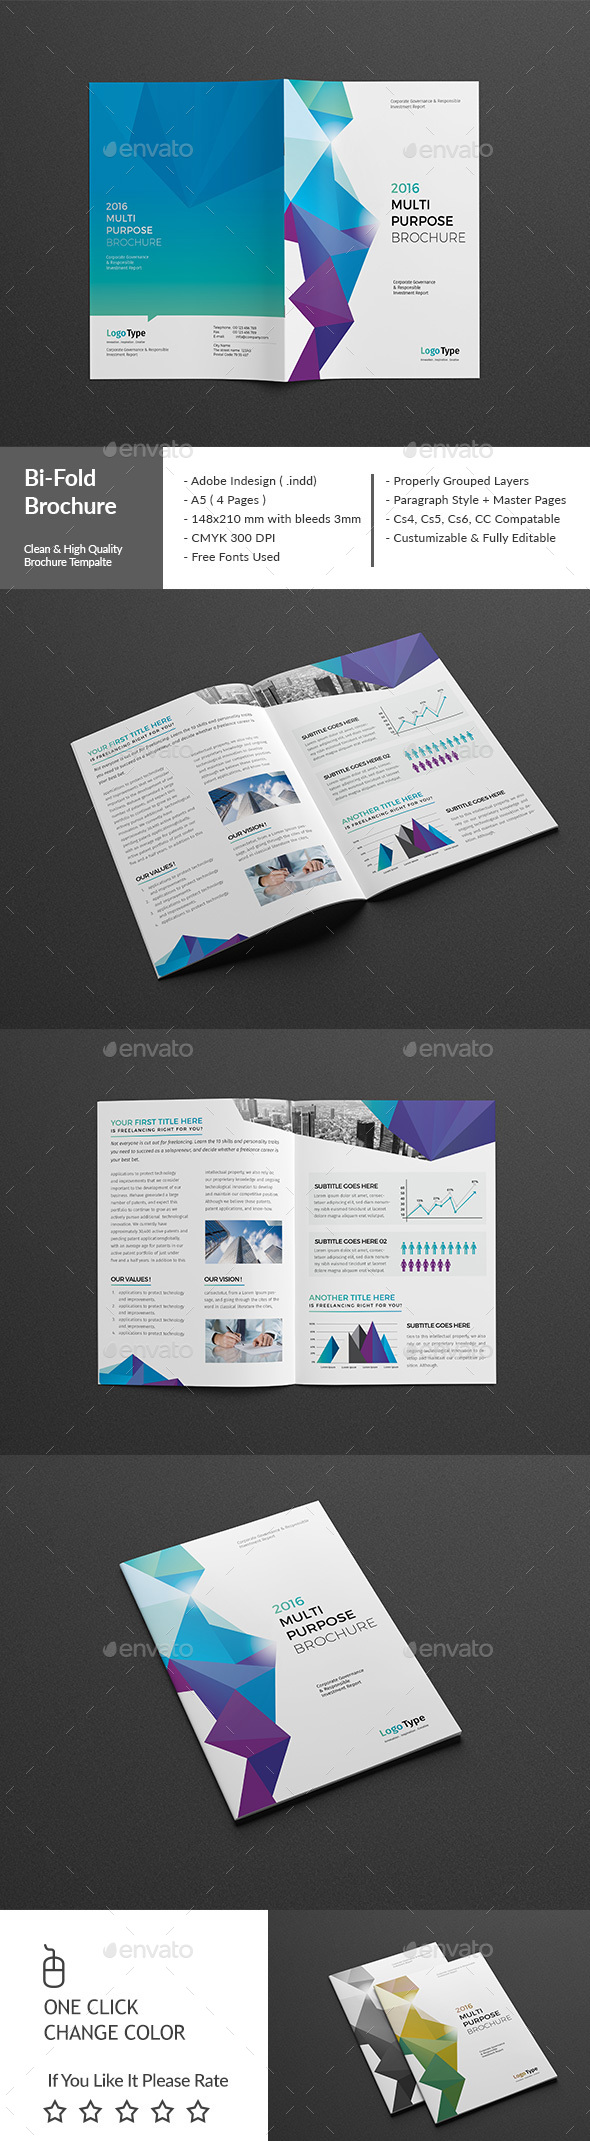 abstract bi fold brochure template indesign indd design download http